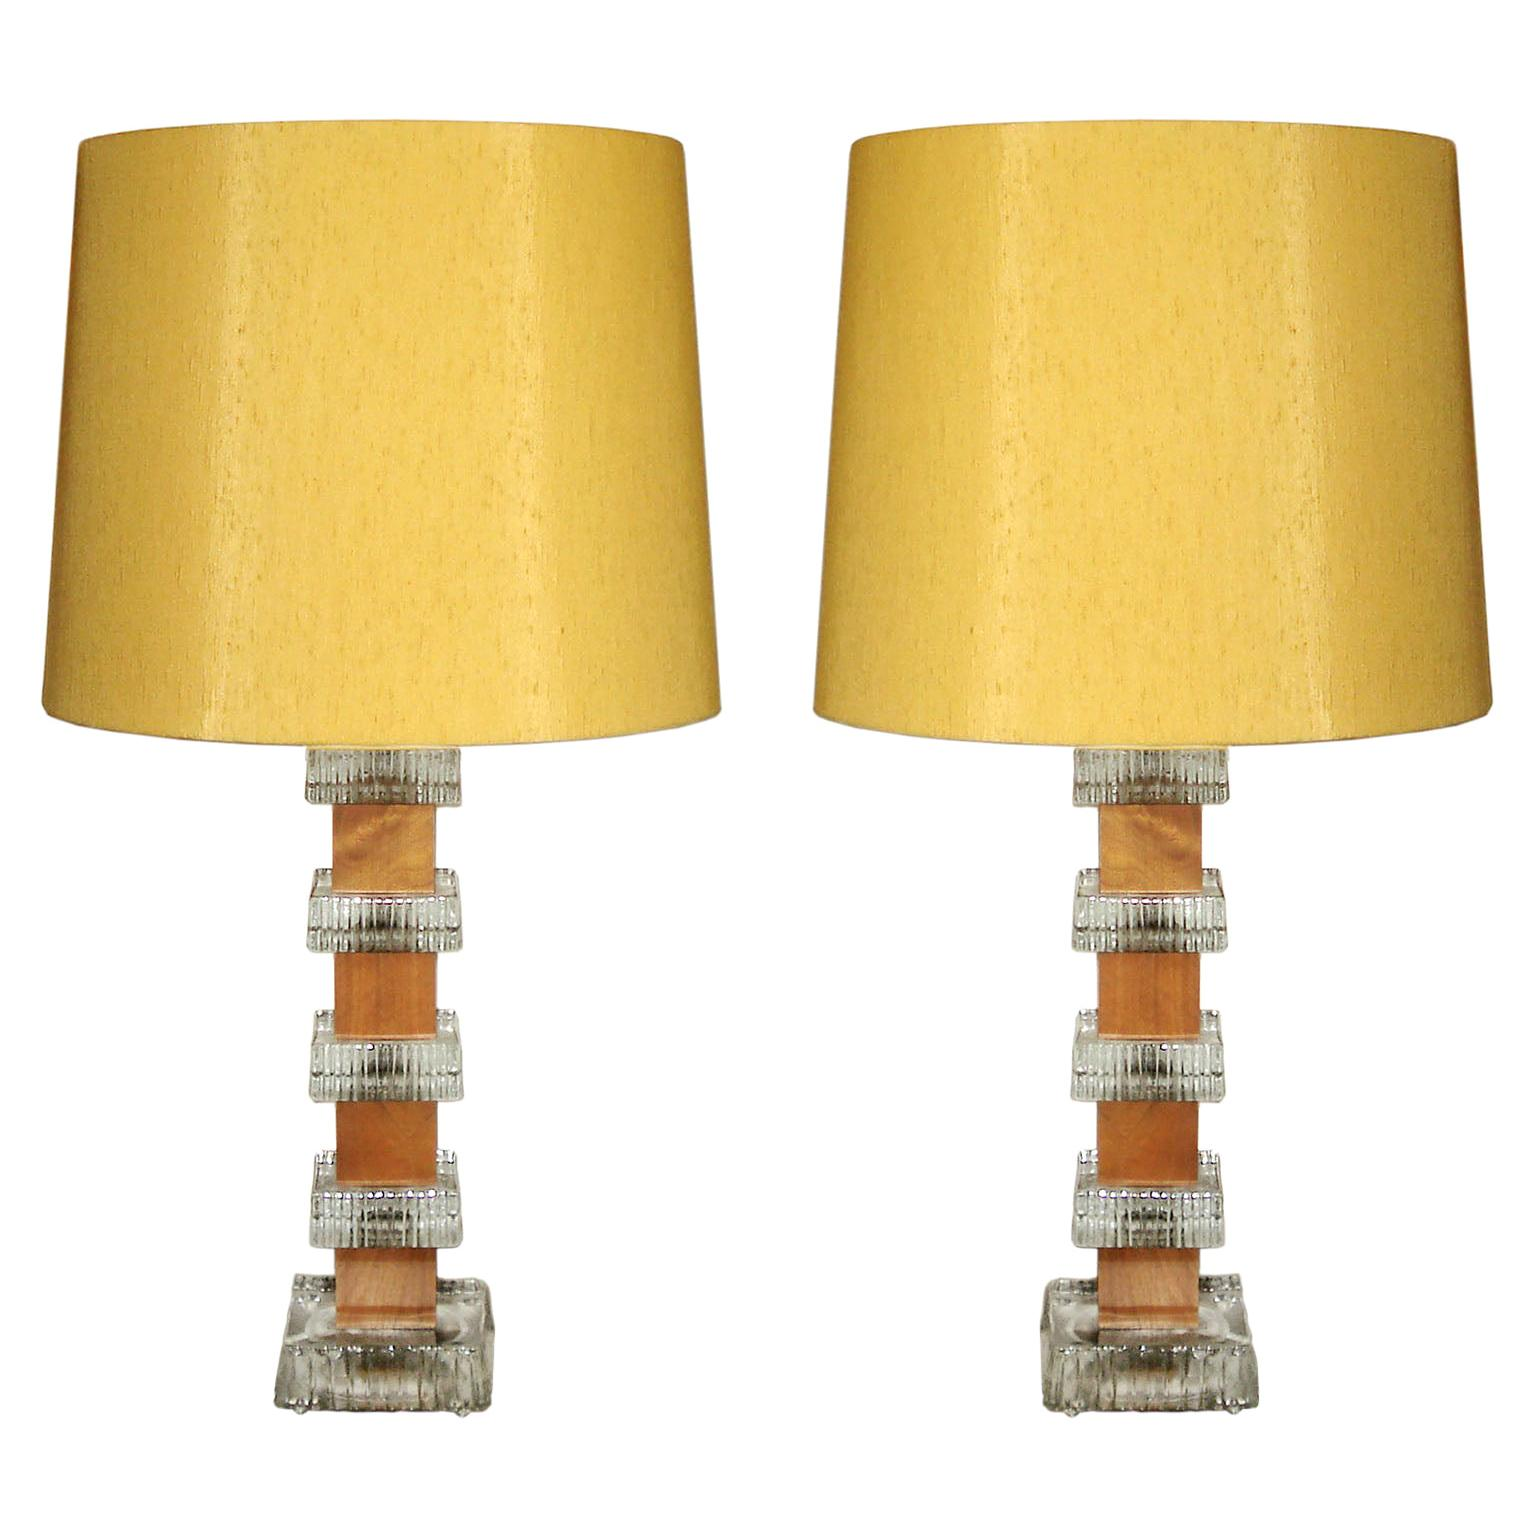 Scandinavian Midcentury Pair of Teak and Crystal Table Lamps